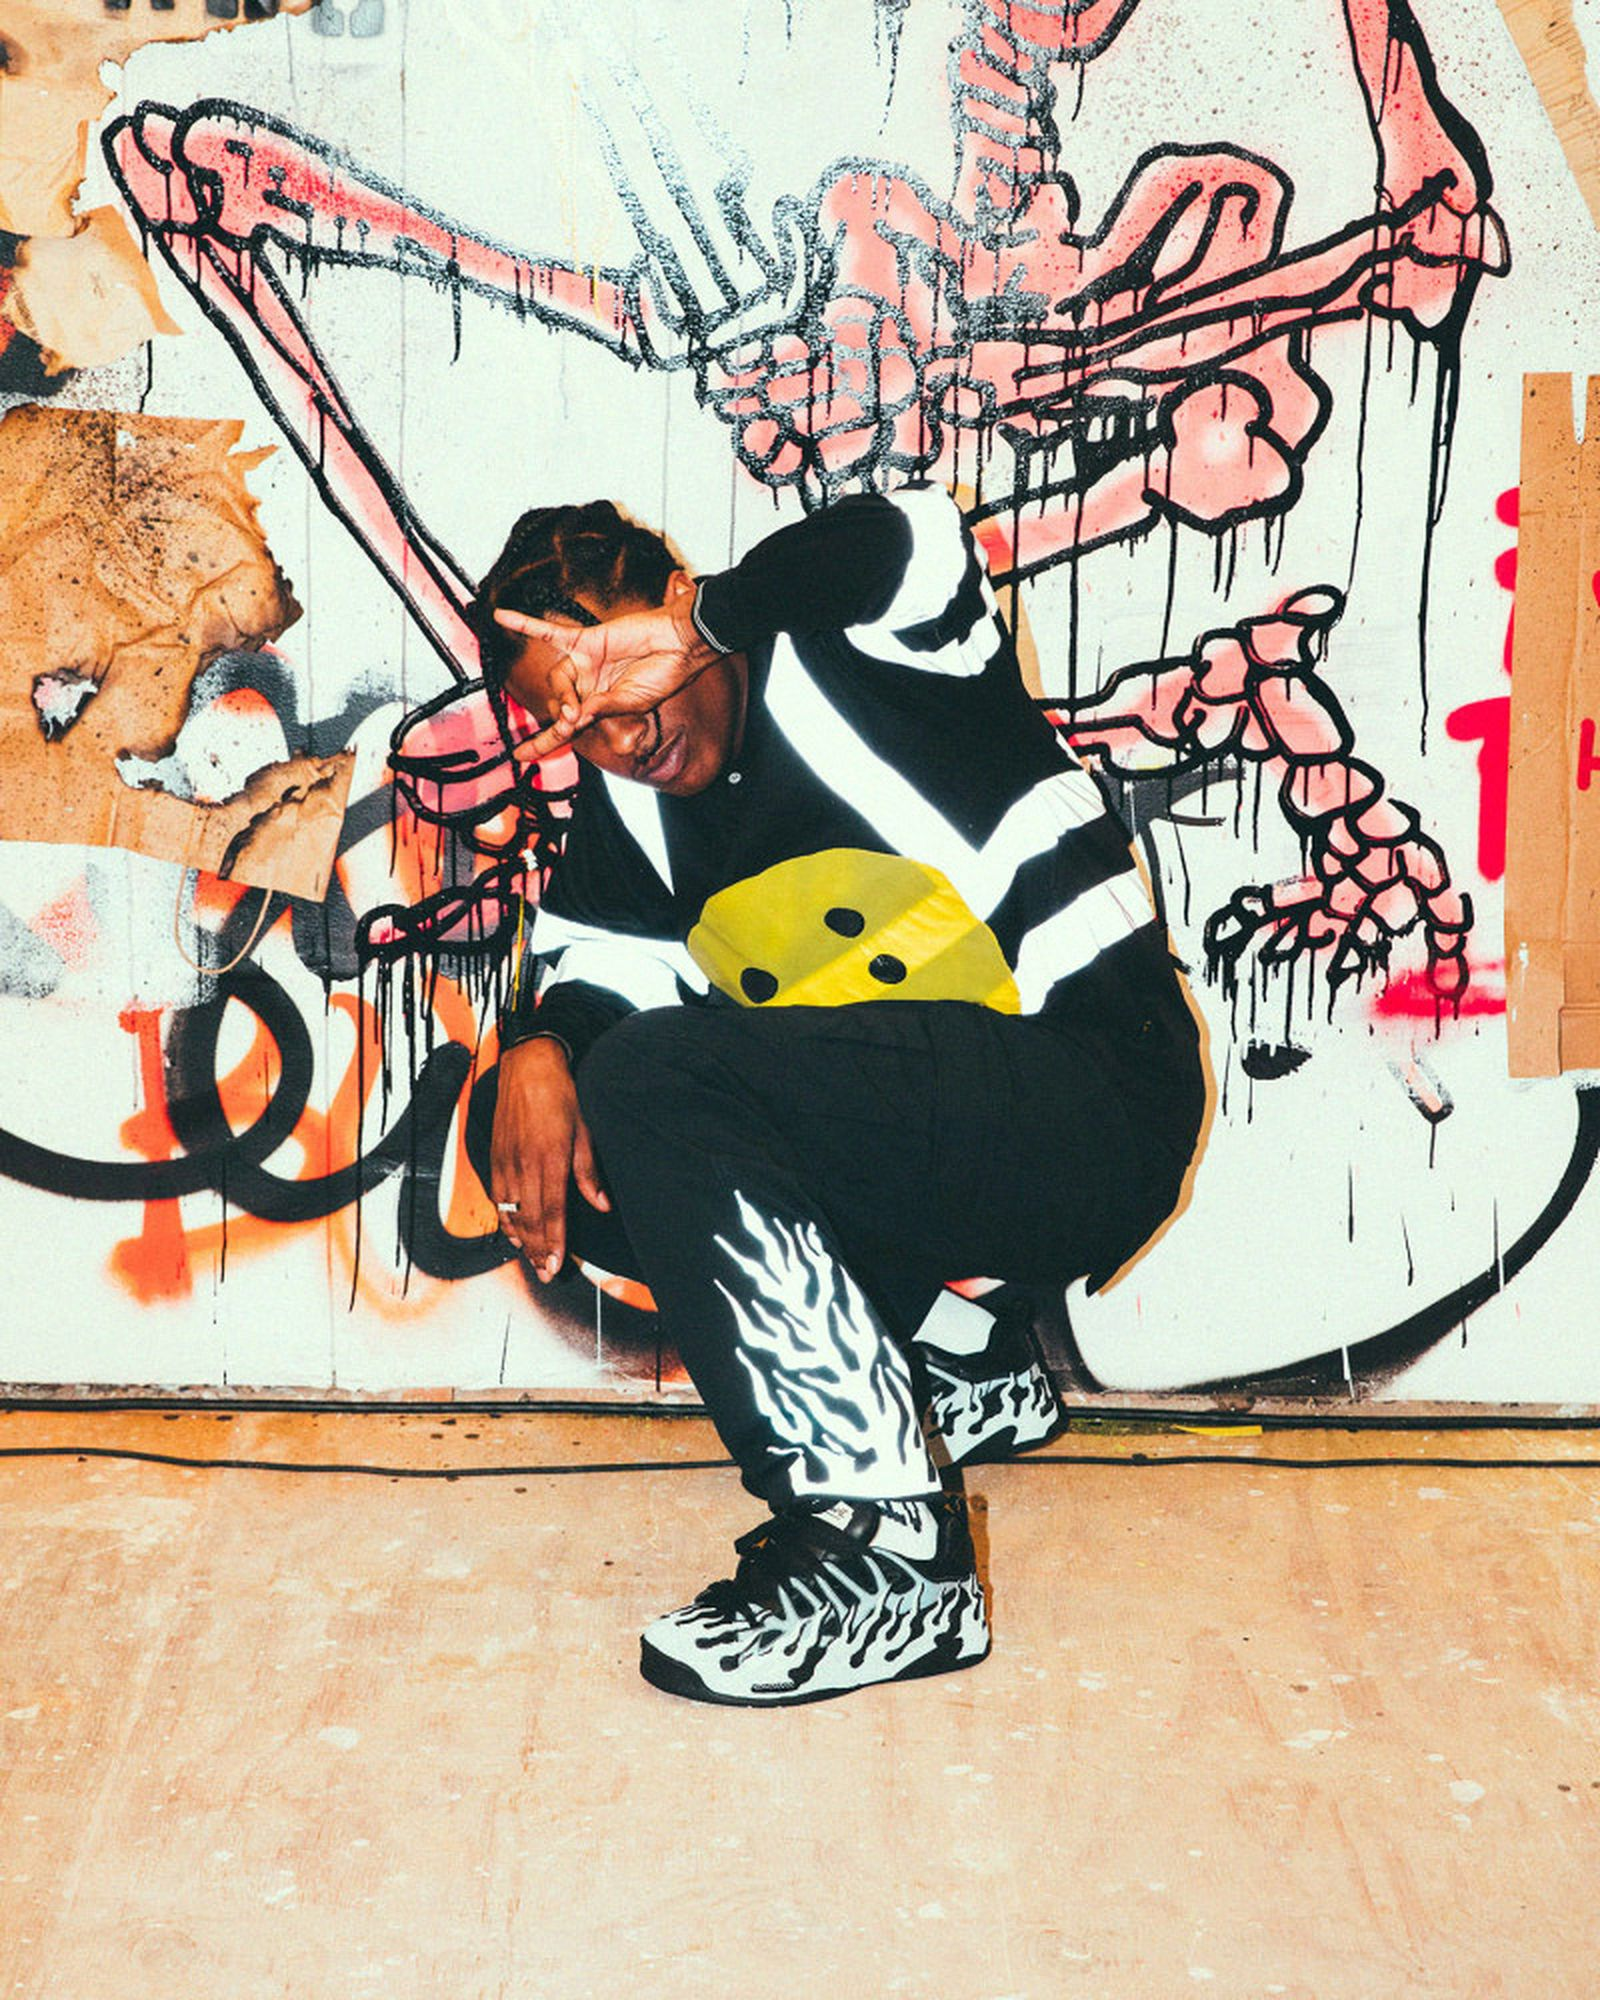 the 14 biggest sneaker moments of 2018 A$AP Rocky Adidas Nike